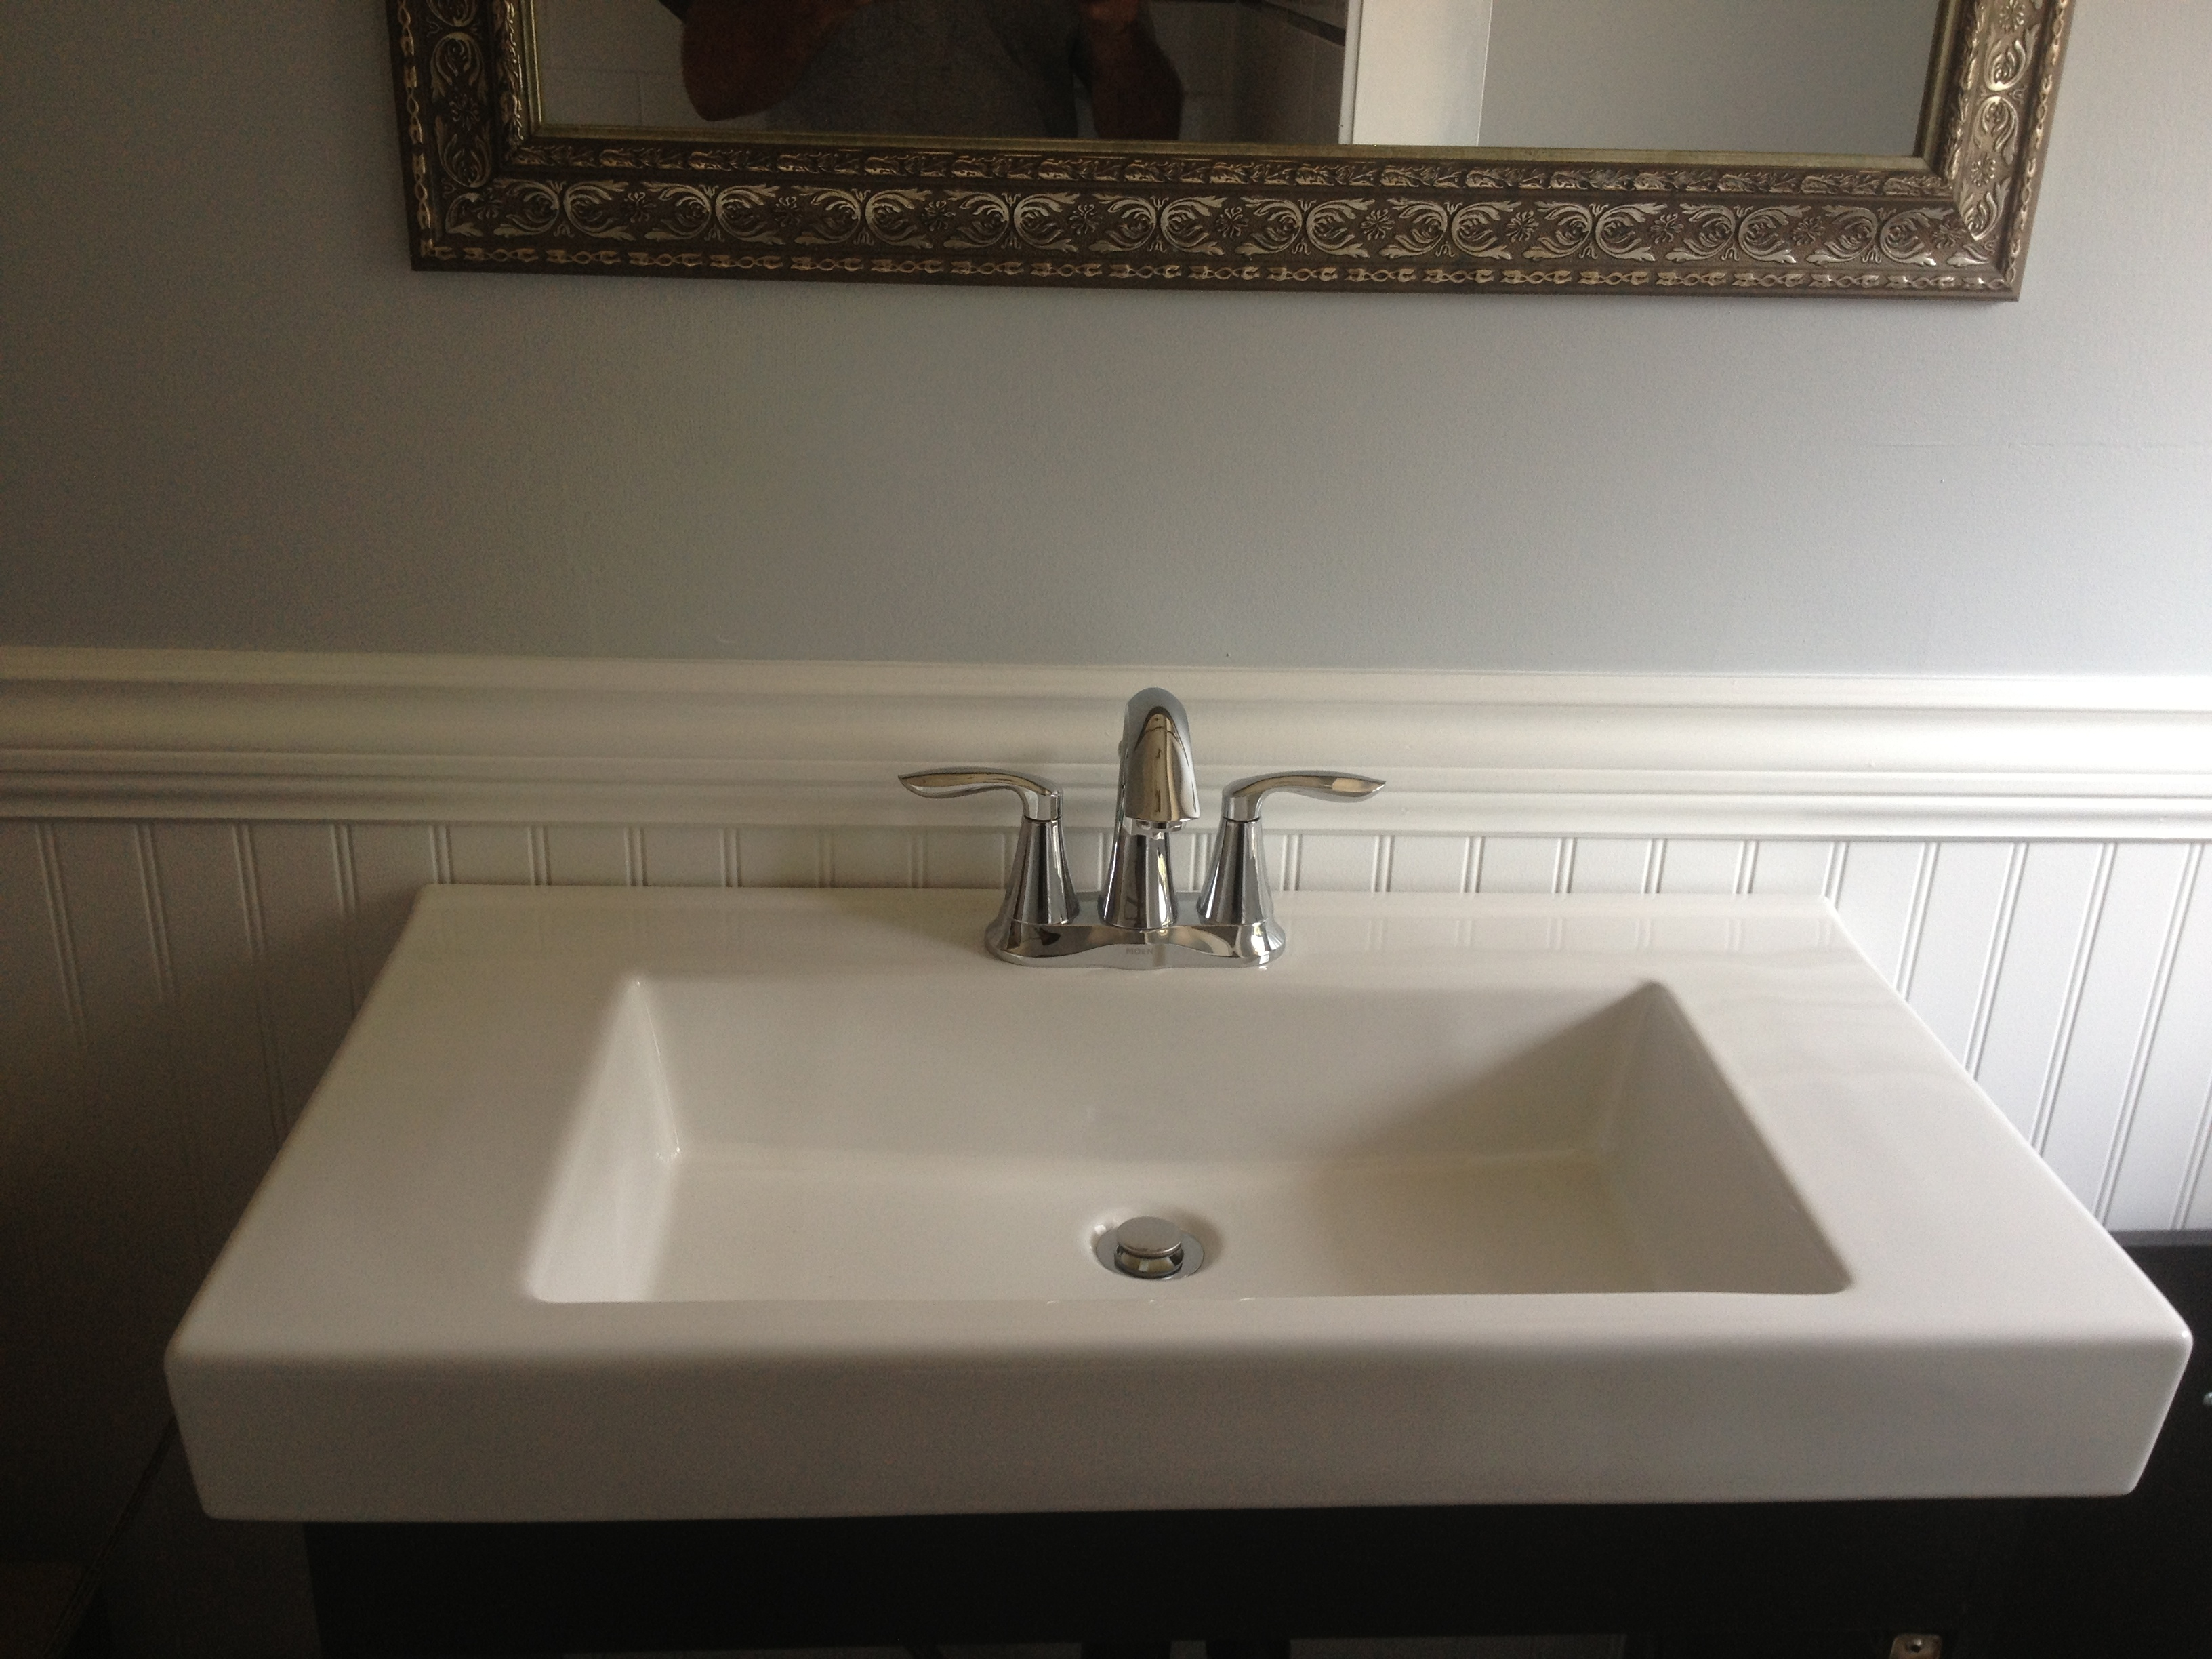 rona kitchen sink luxury best american standard kitchen faucets intended for proportions 3264 x 2448